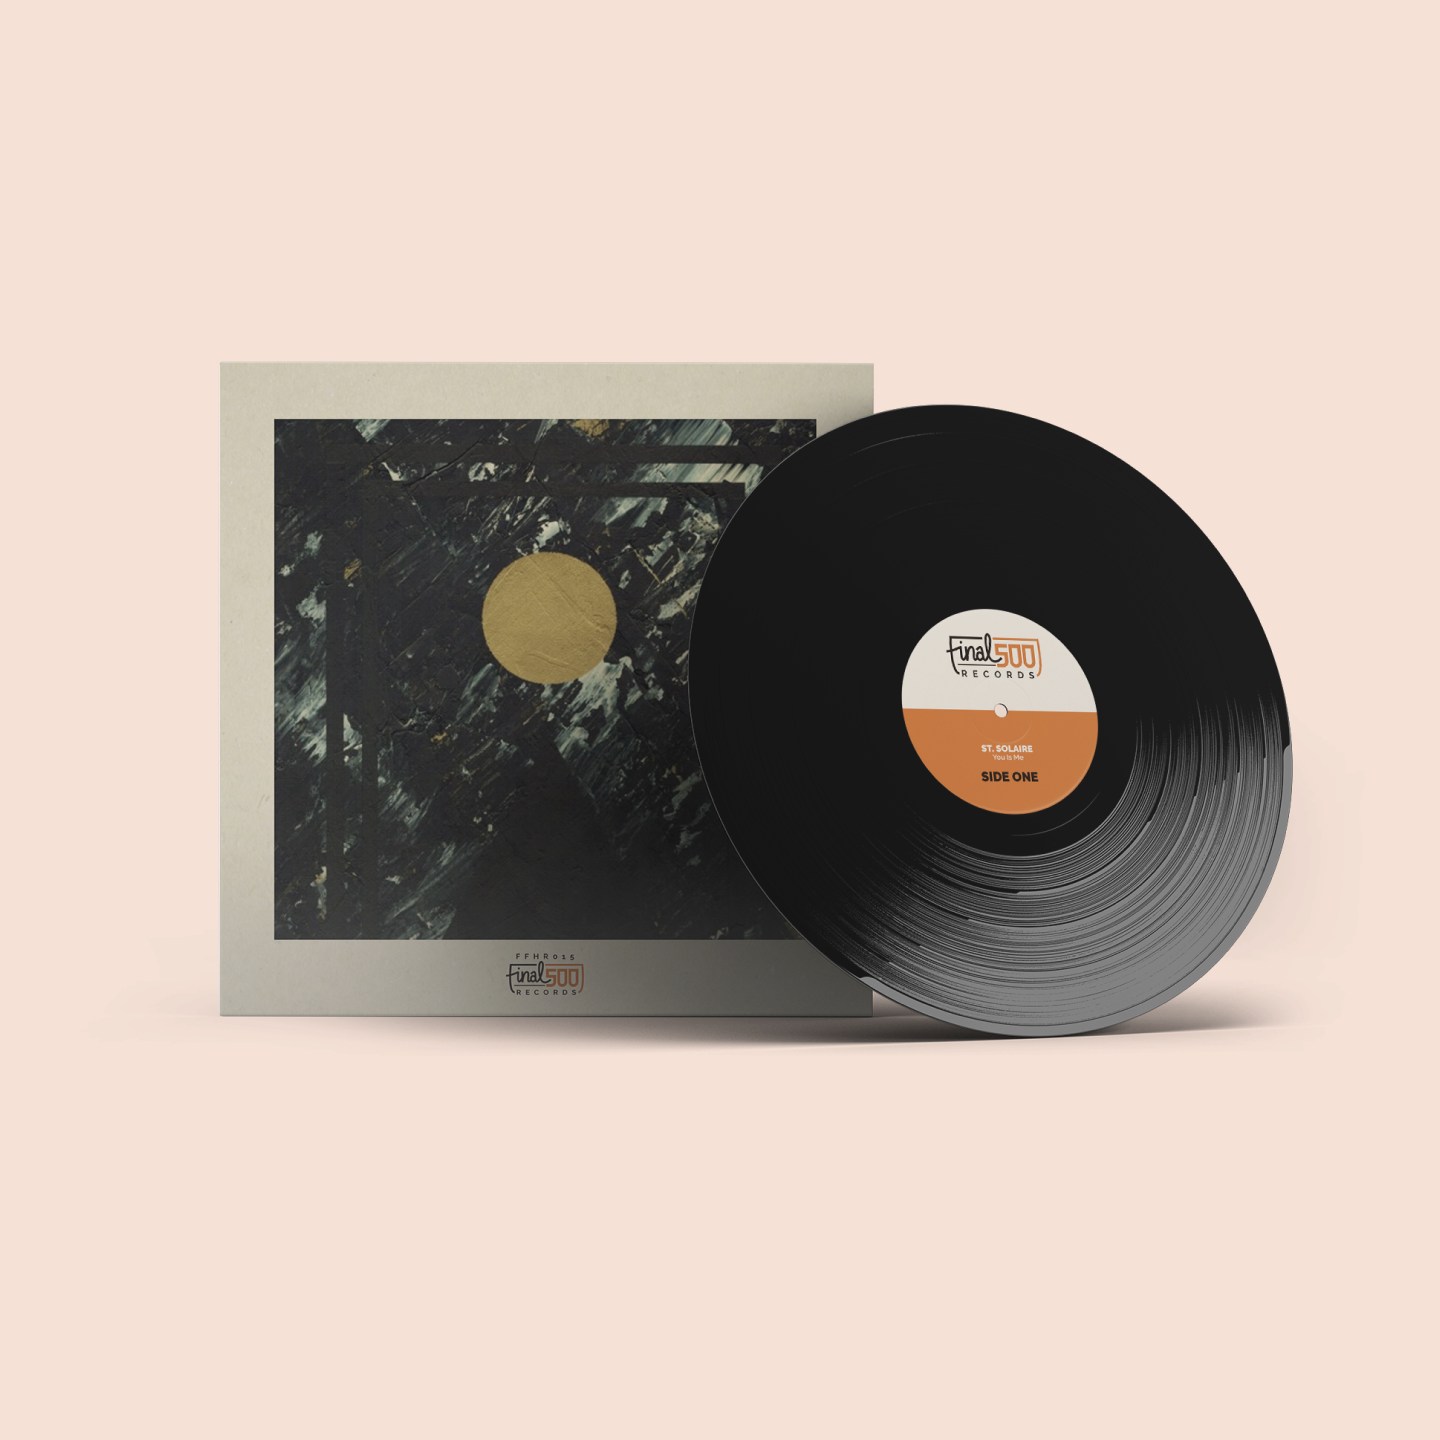 https://final500records.nl/wp-content/uploads/2021/06/FFHR015-Front.png